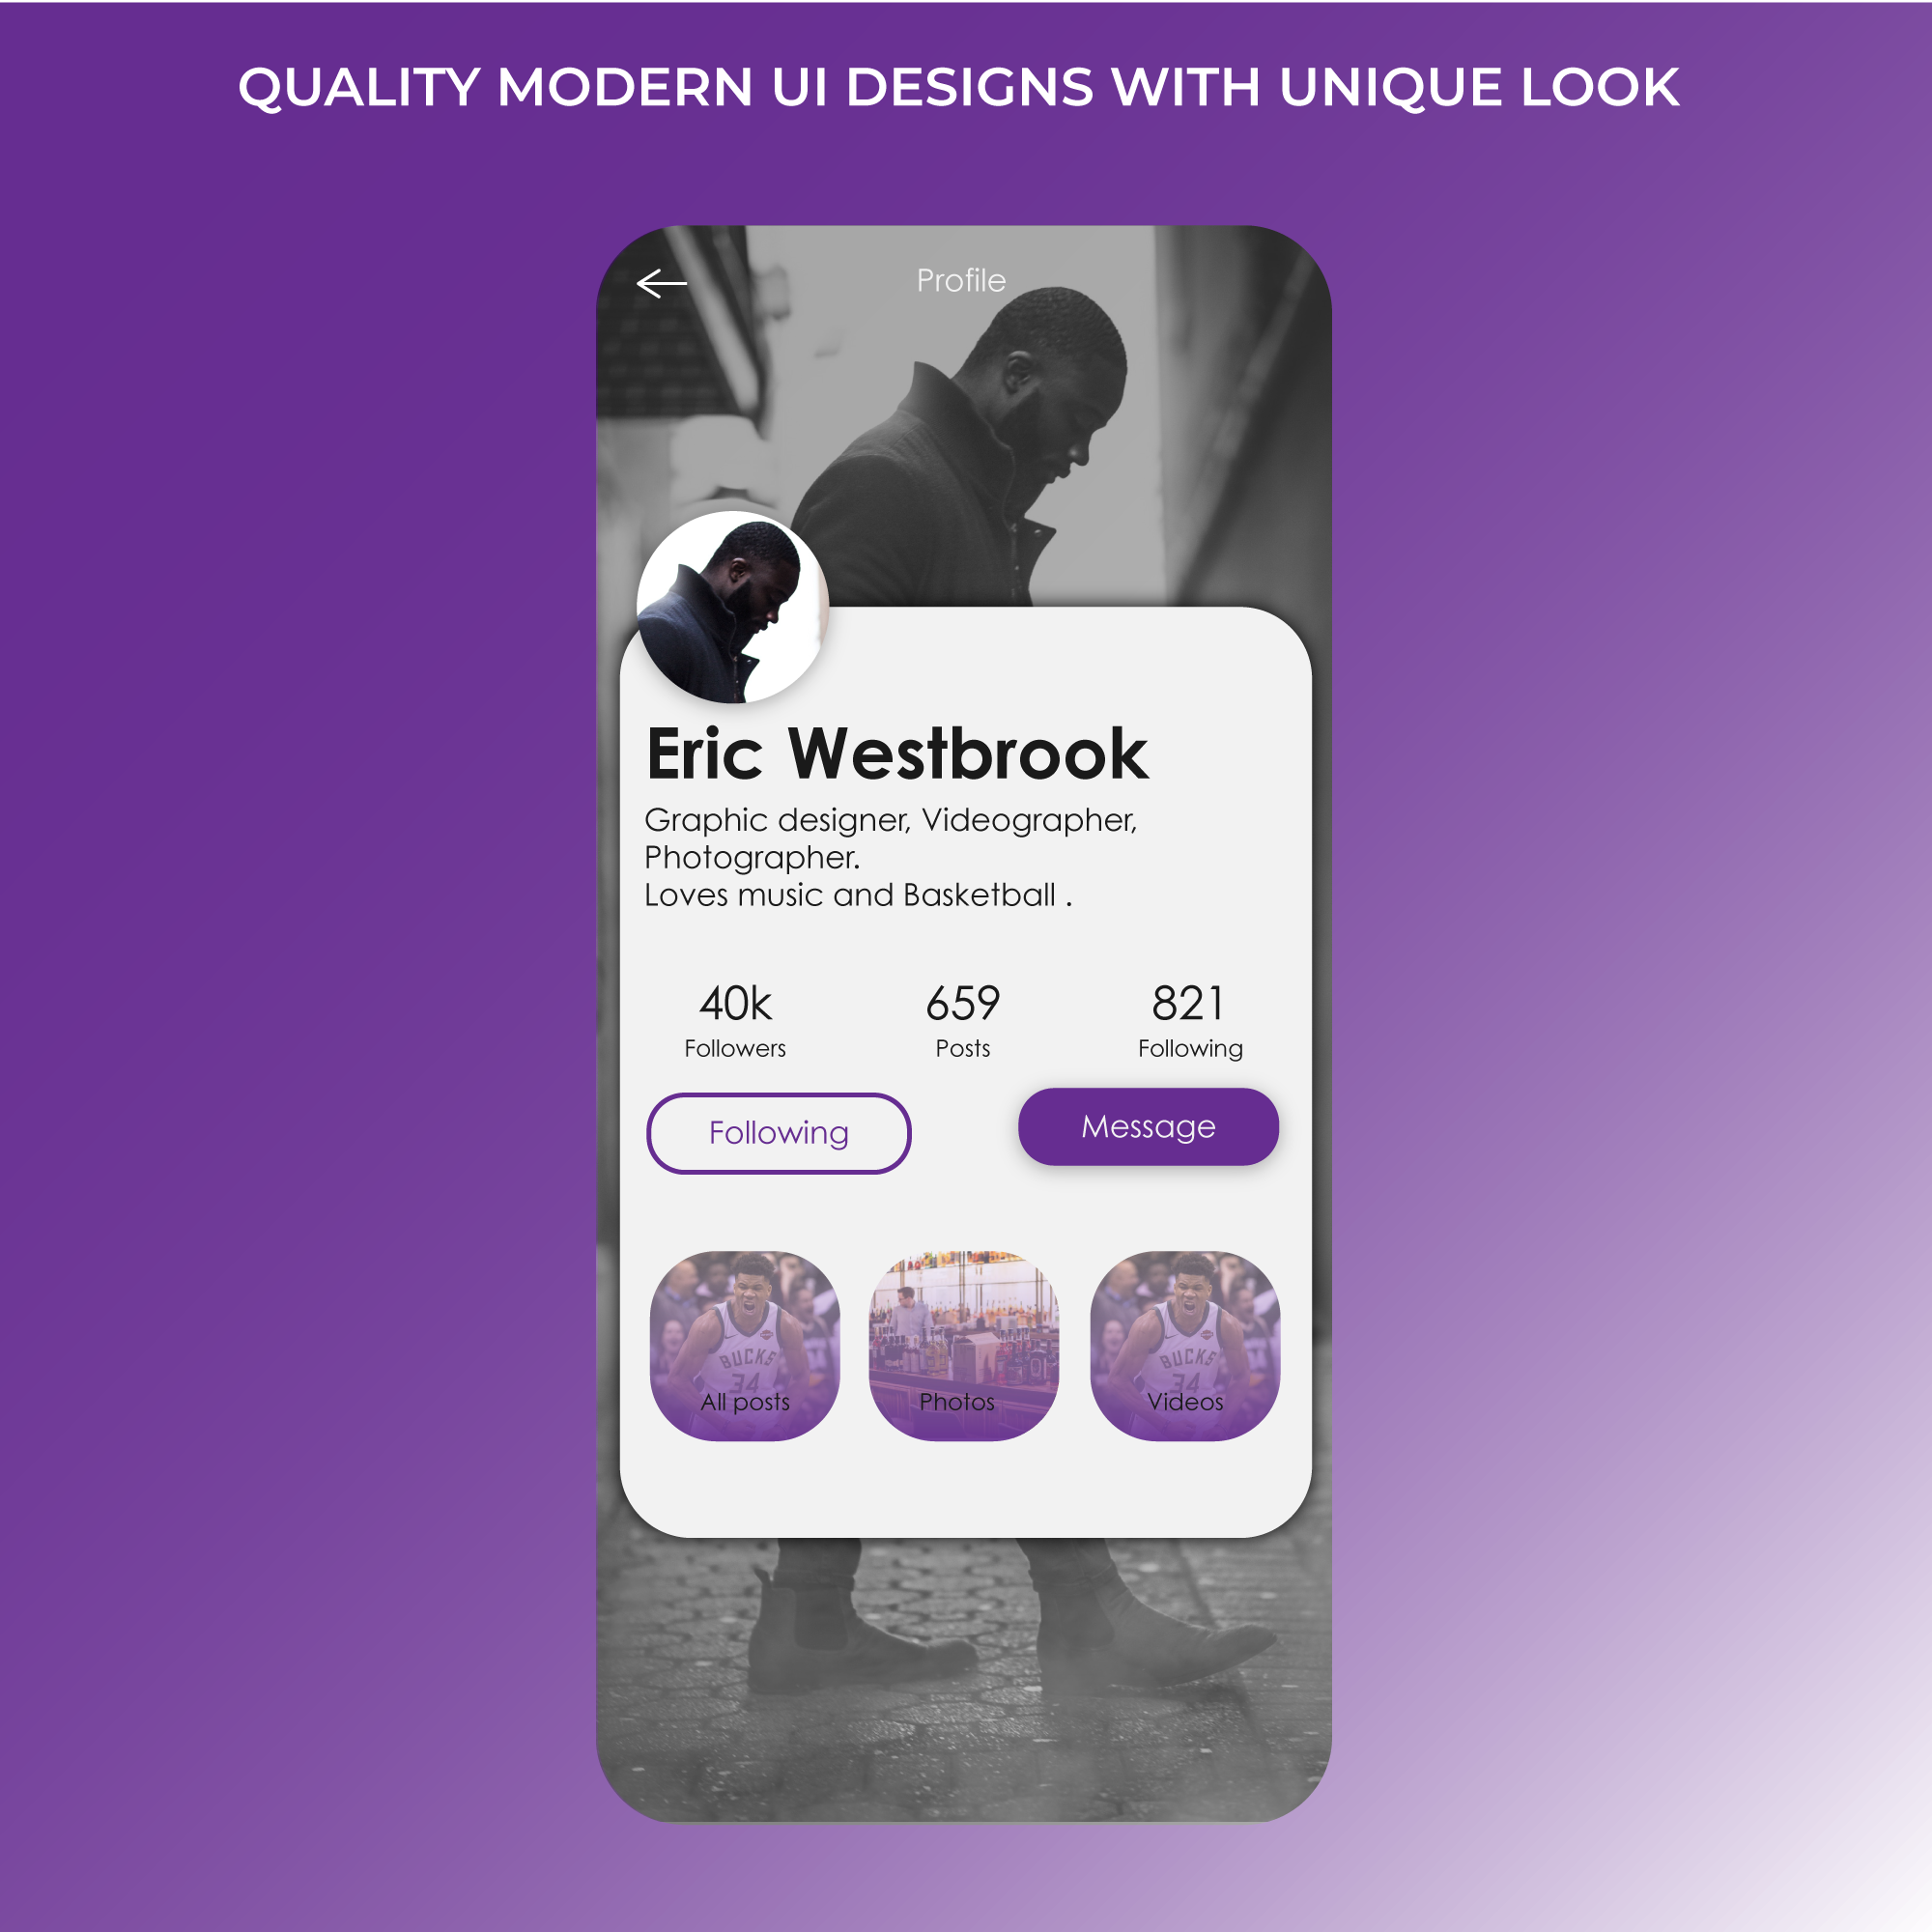 I WILL DESIGN A PROFESSIONAL UI FOR WEB OR MOBILE APP